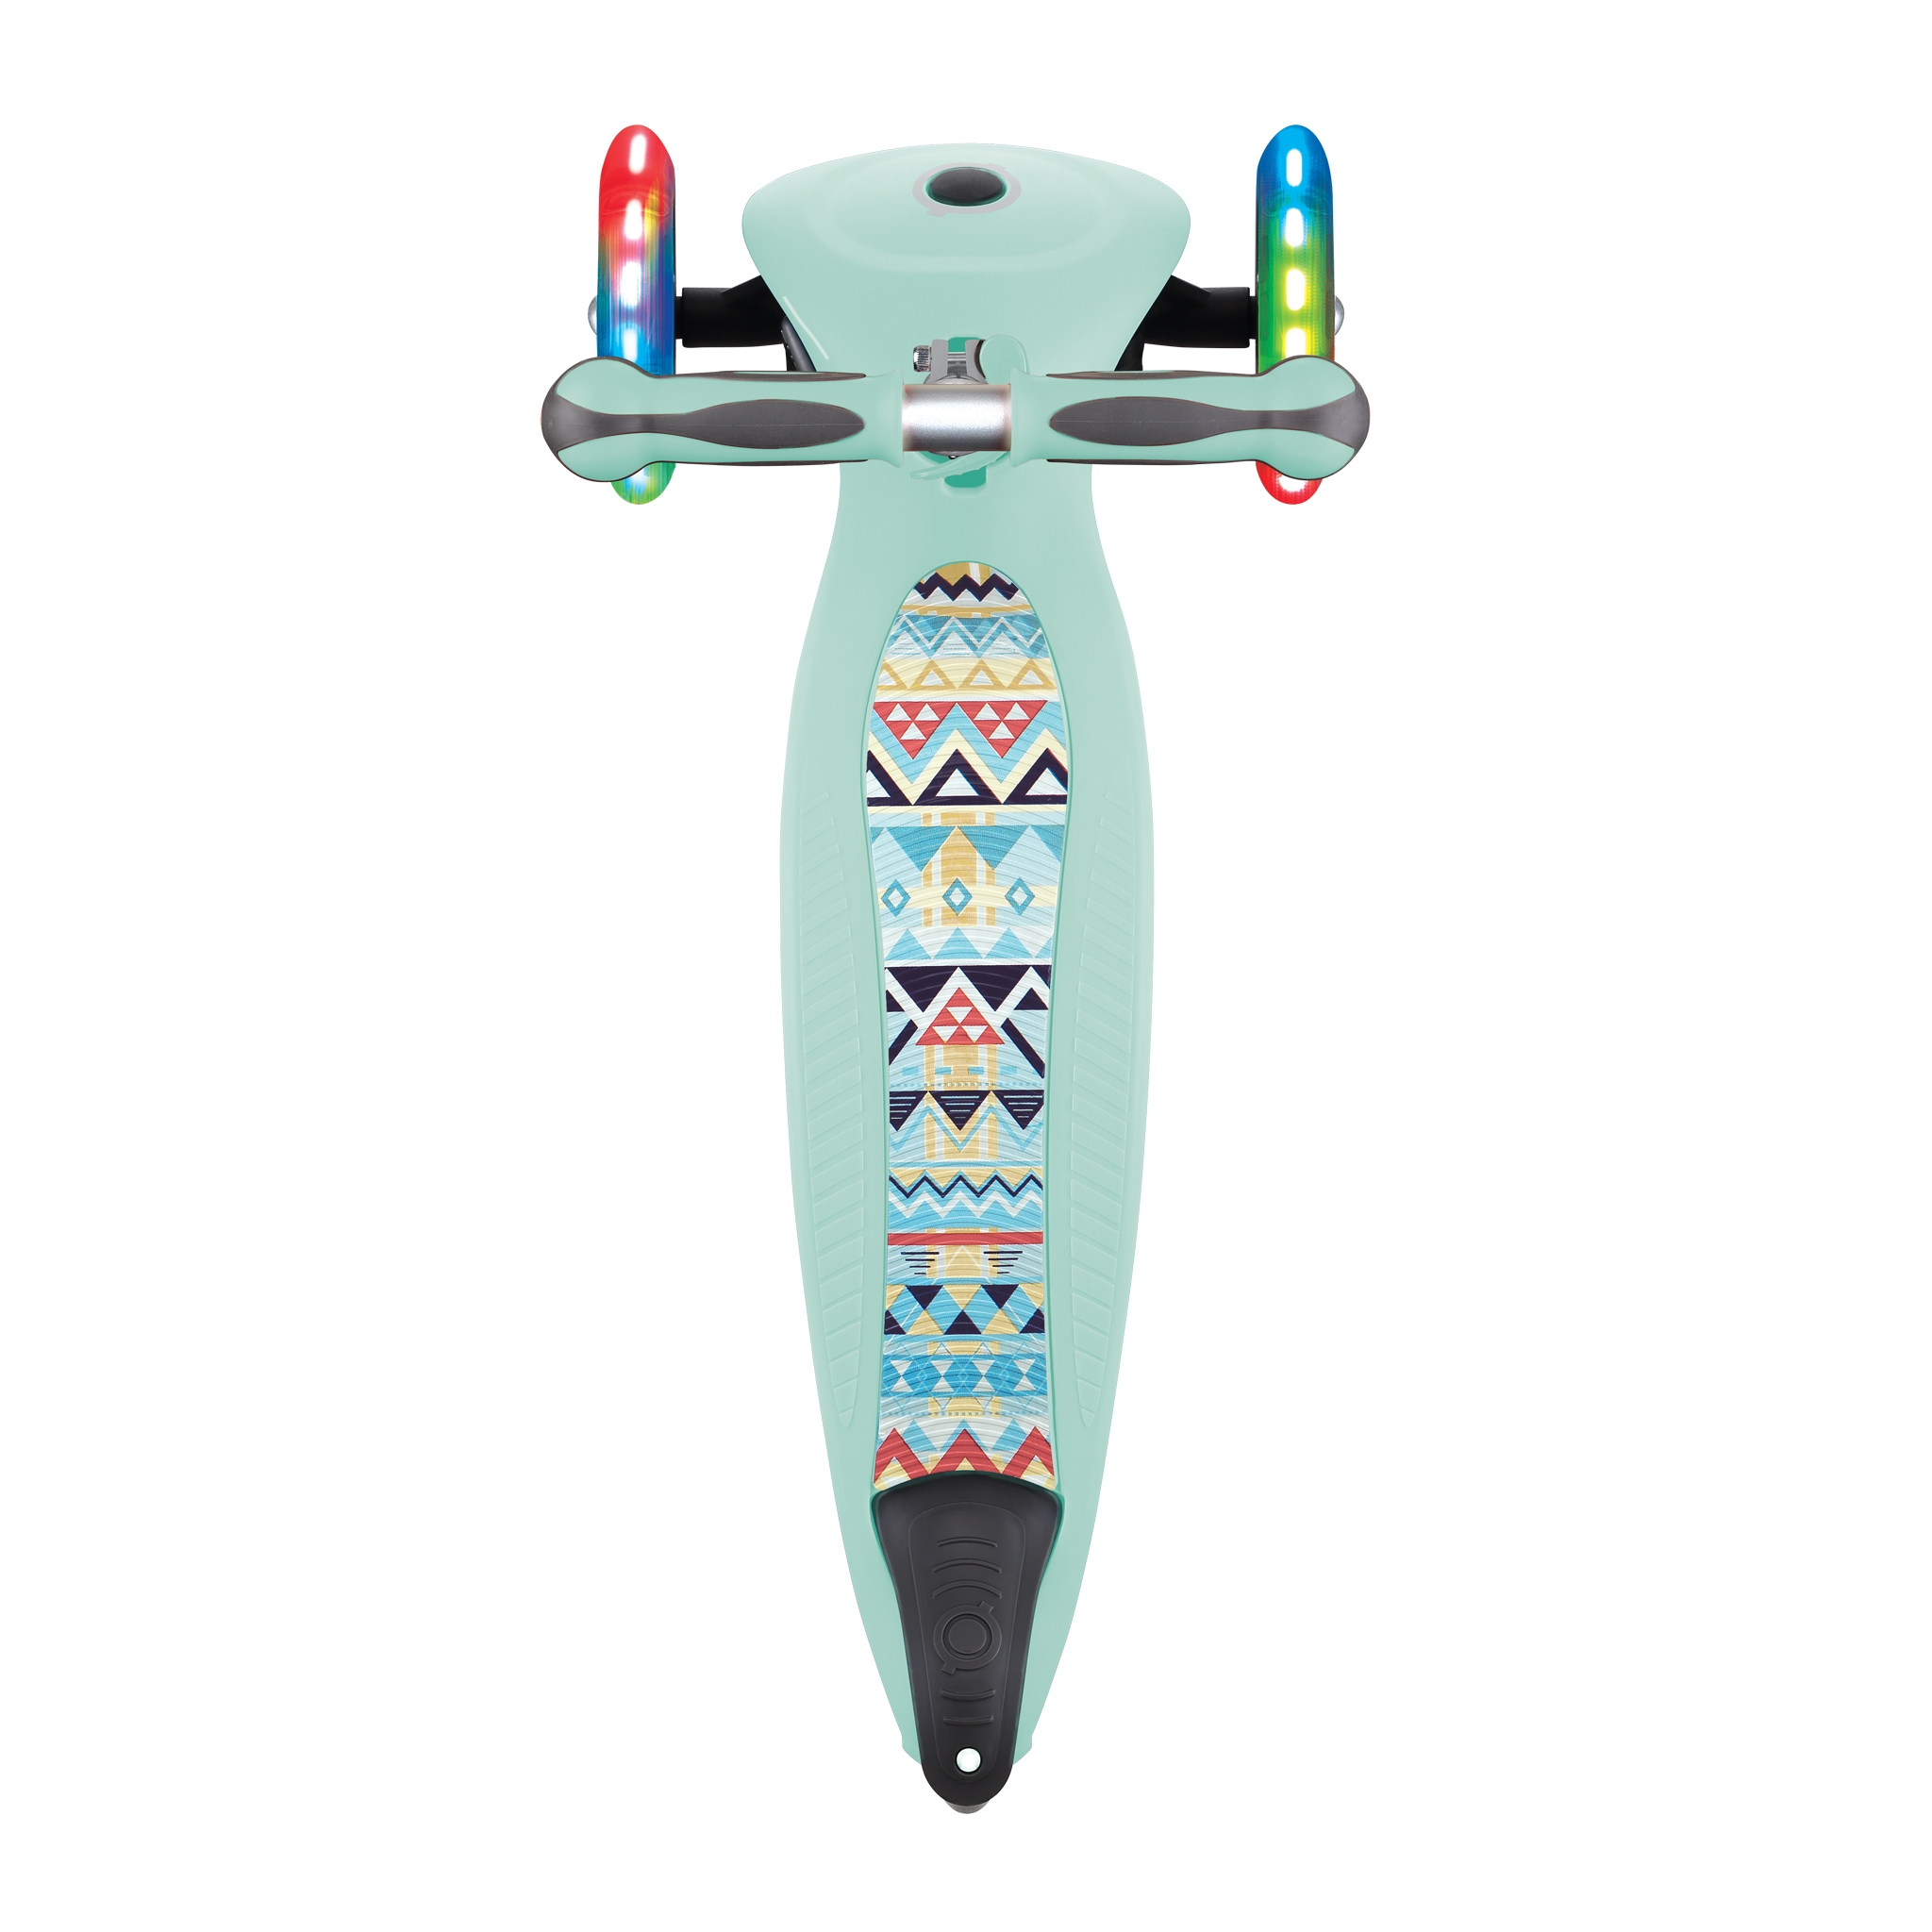 foldable-scooters-for-toddlers-with-patterned-deck-GO-UP-DELUXE-FANTASY-LIGHTS 5